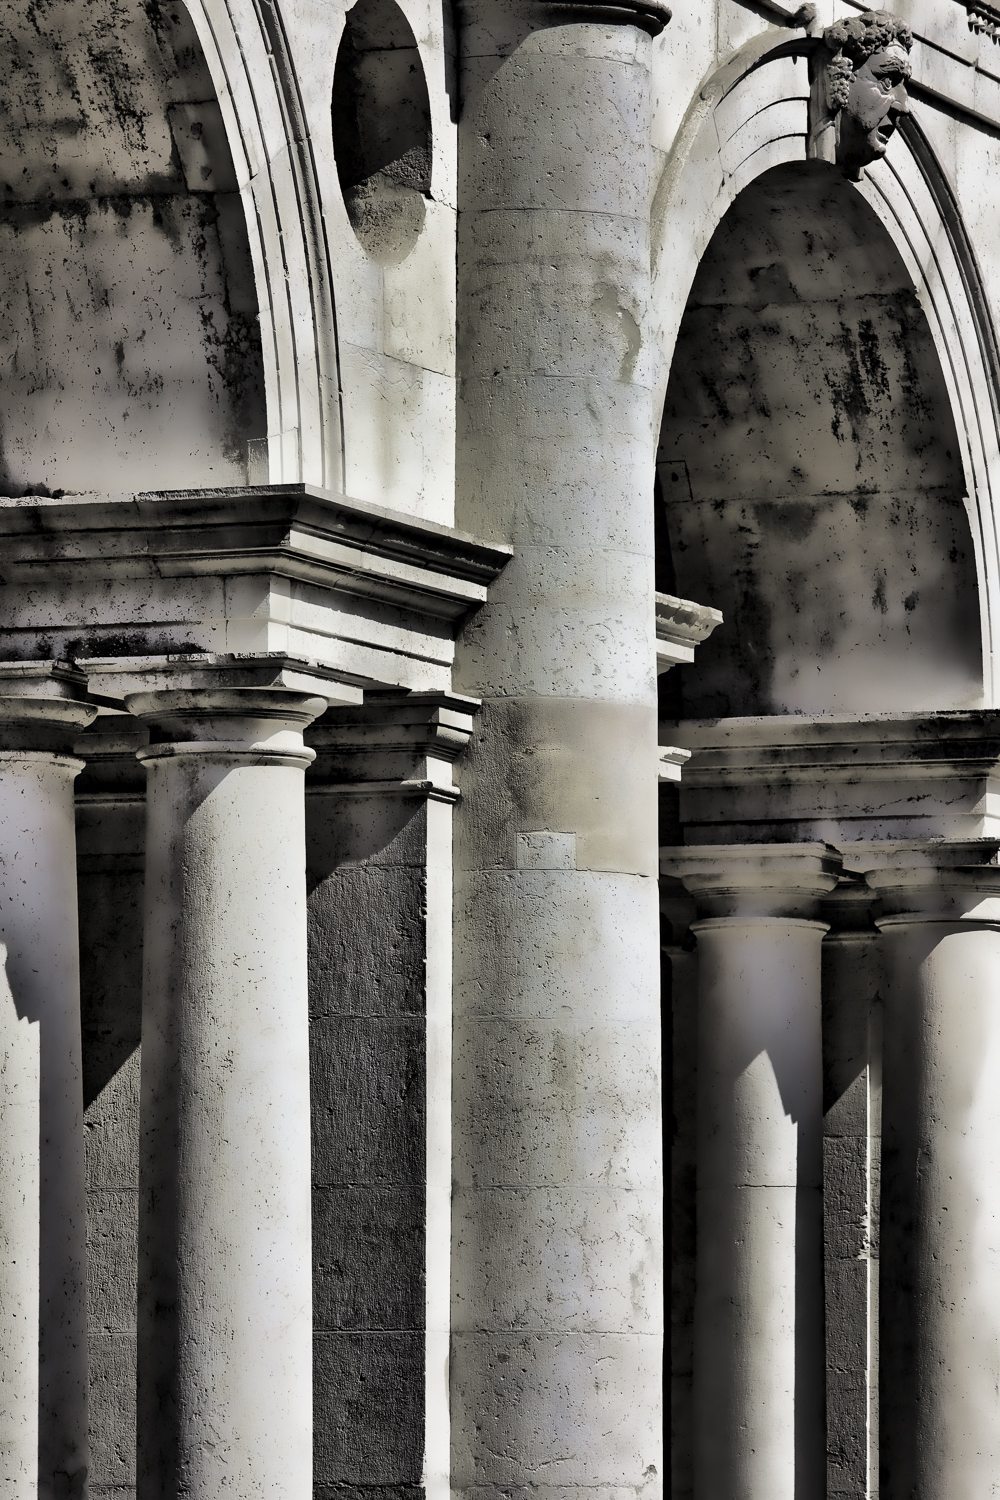 Arch and Columns, Vicenza, Italy, 2010